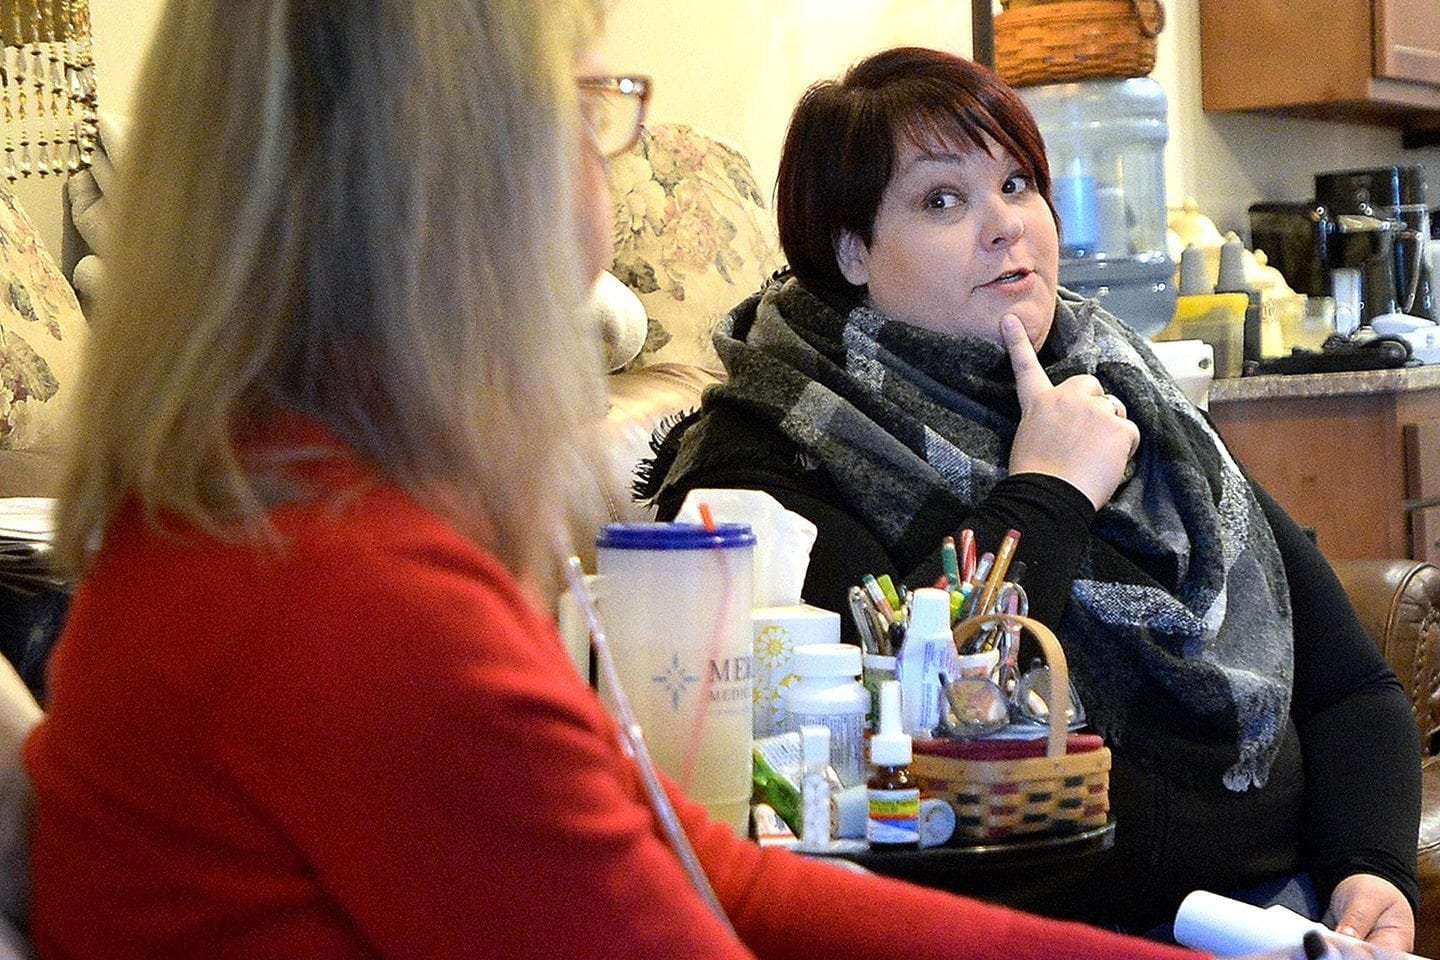 North Cantonians help seriously ill individuals by delivering meals